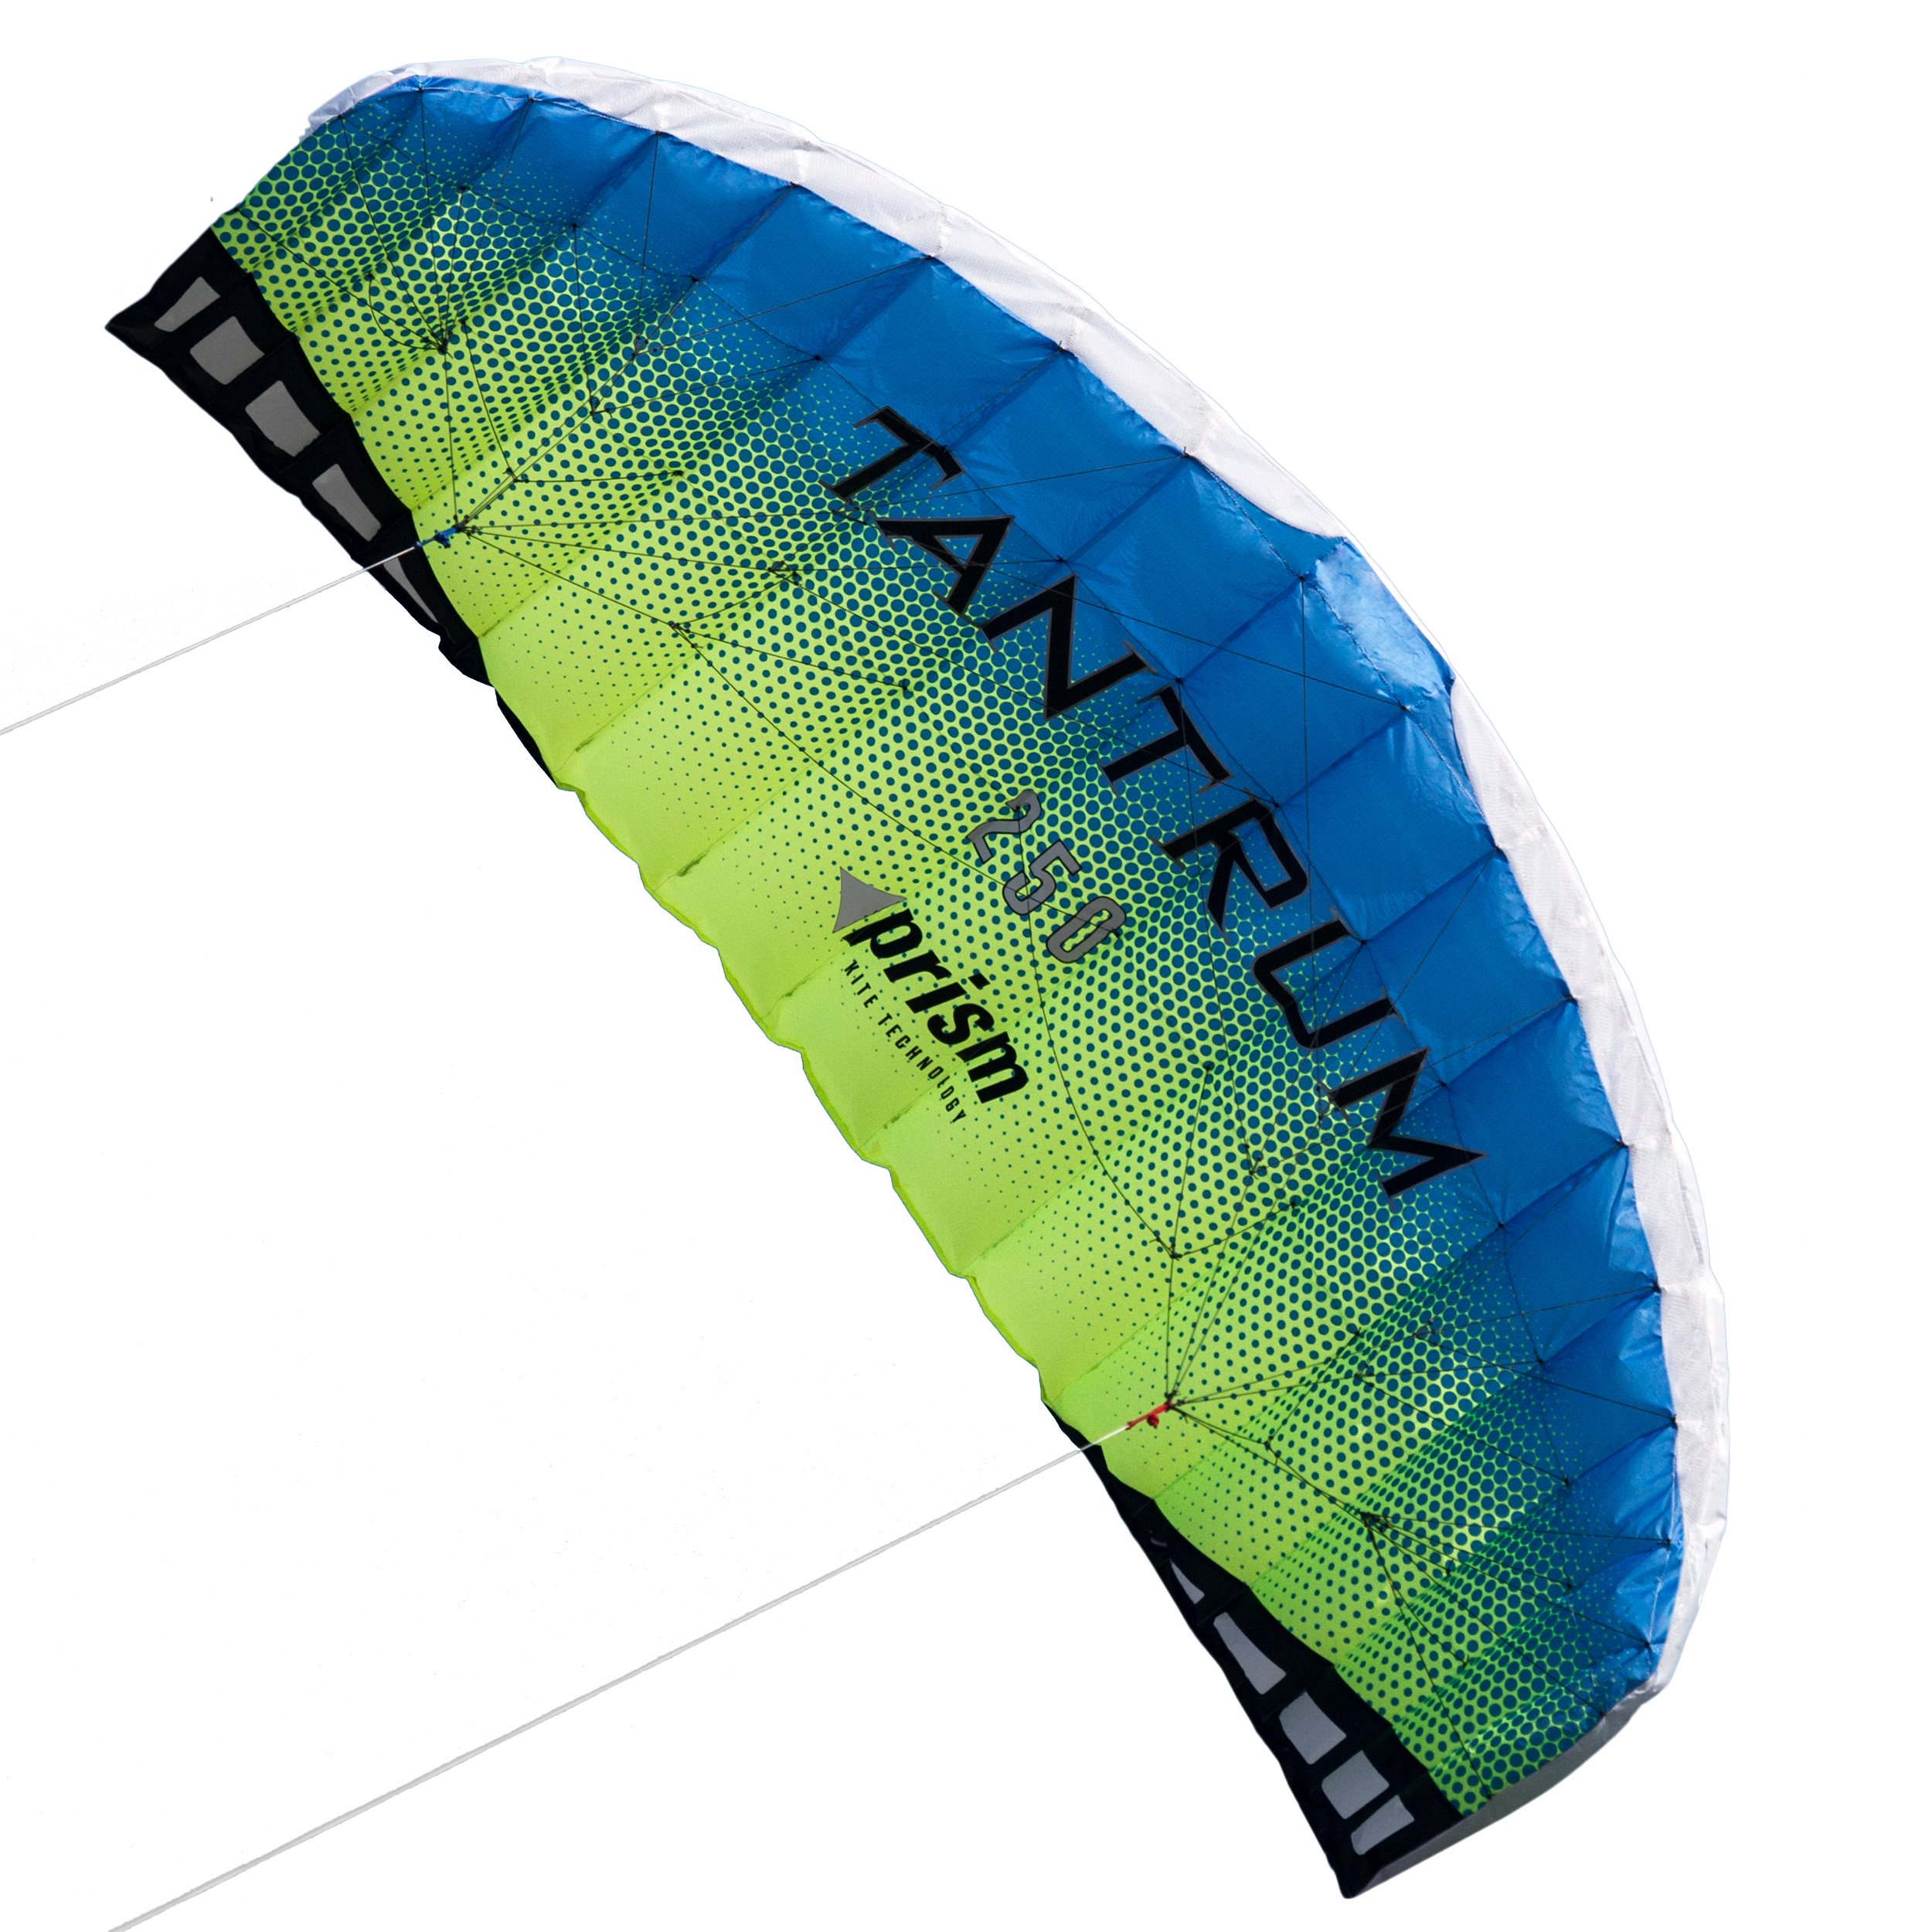 Prism Tantrum 250 Dual-line Parafoil Kite with Control Bar by Prism Kite Technology